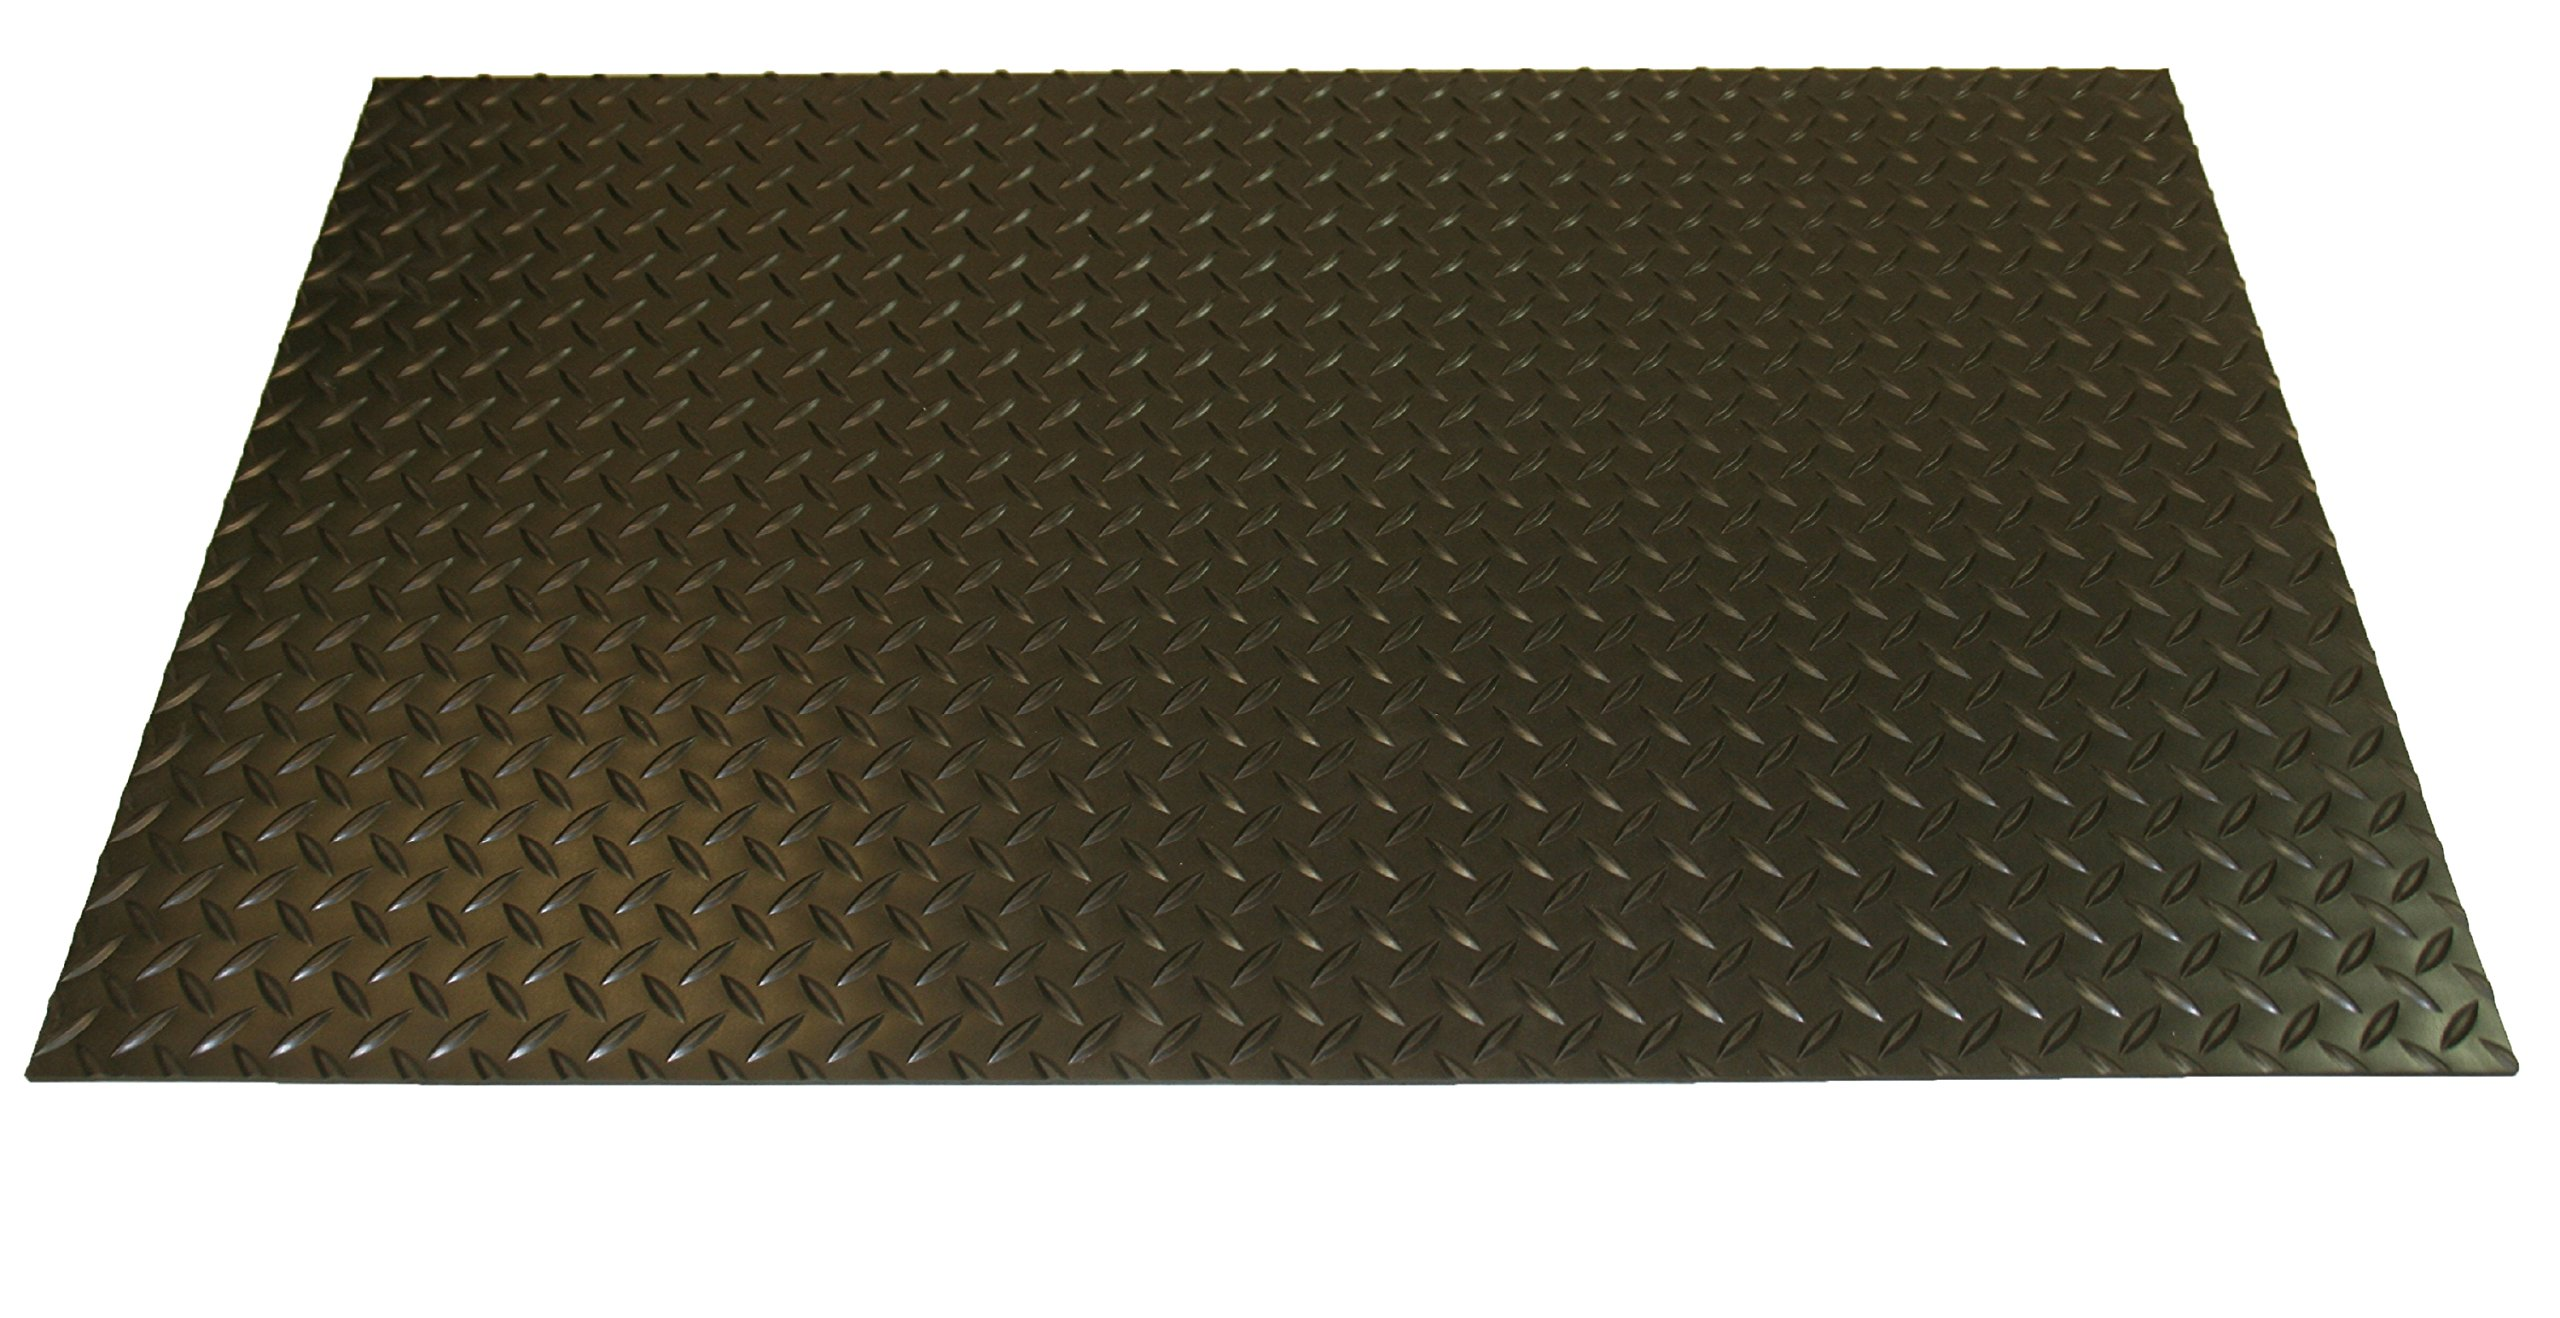 Rhino Mats SBD-424-2436 Diamond Plate Pattern Rubber Insulating Switchboard Mat, 2' Width x 3' Length x 1/4'' Thickness, 30000 VAC, ASTM Type II Class 2, Black